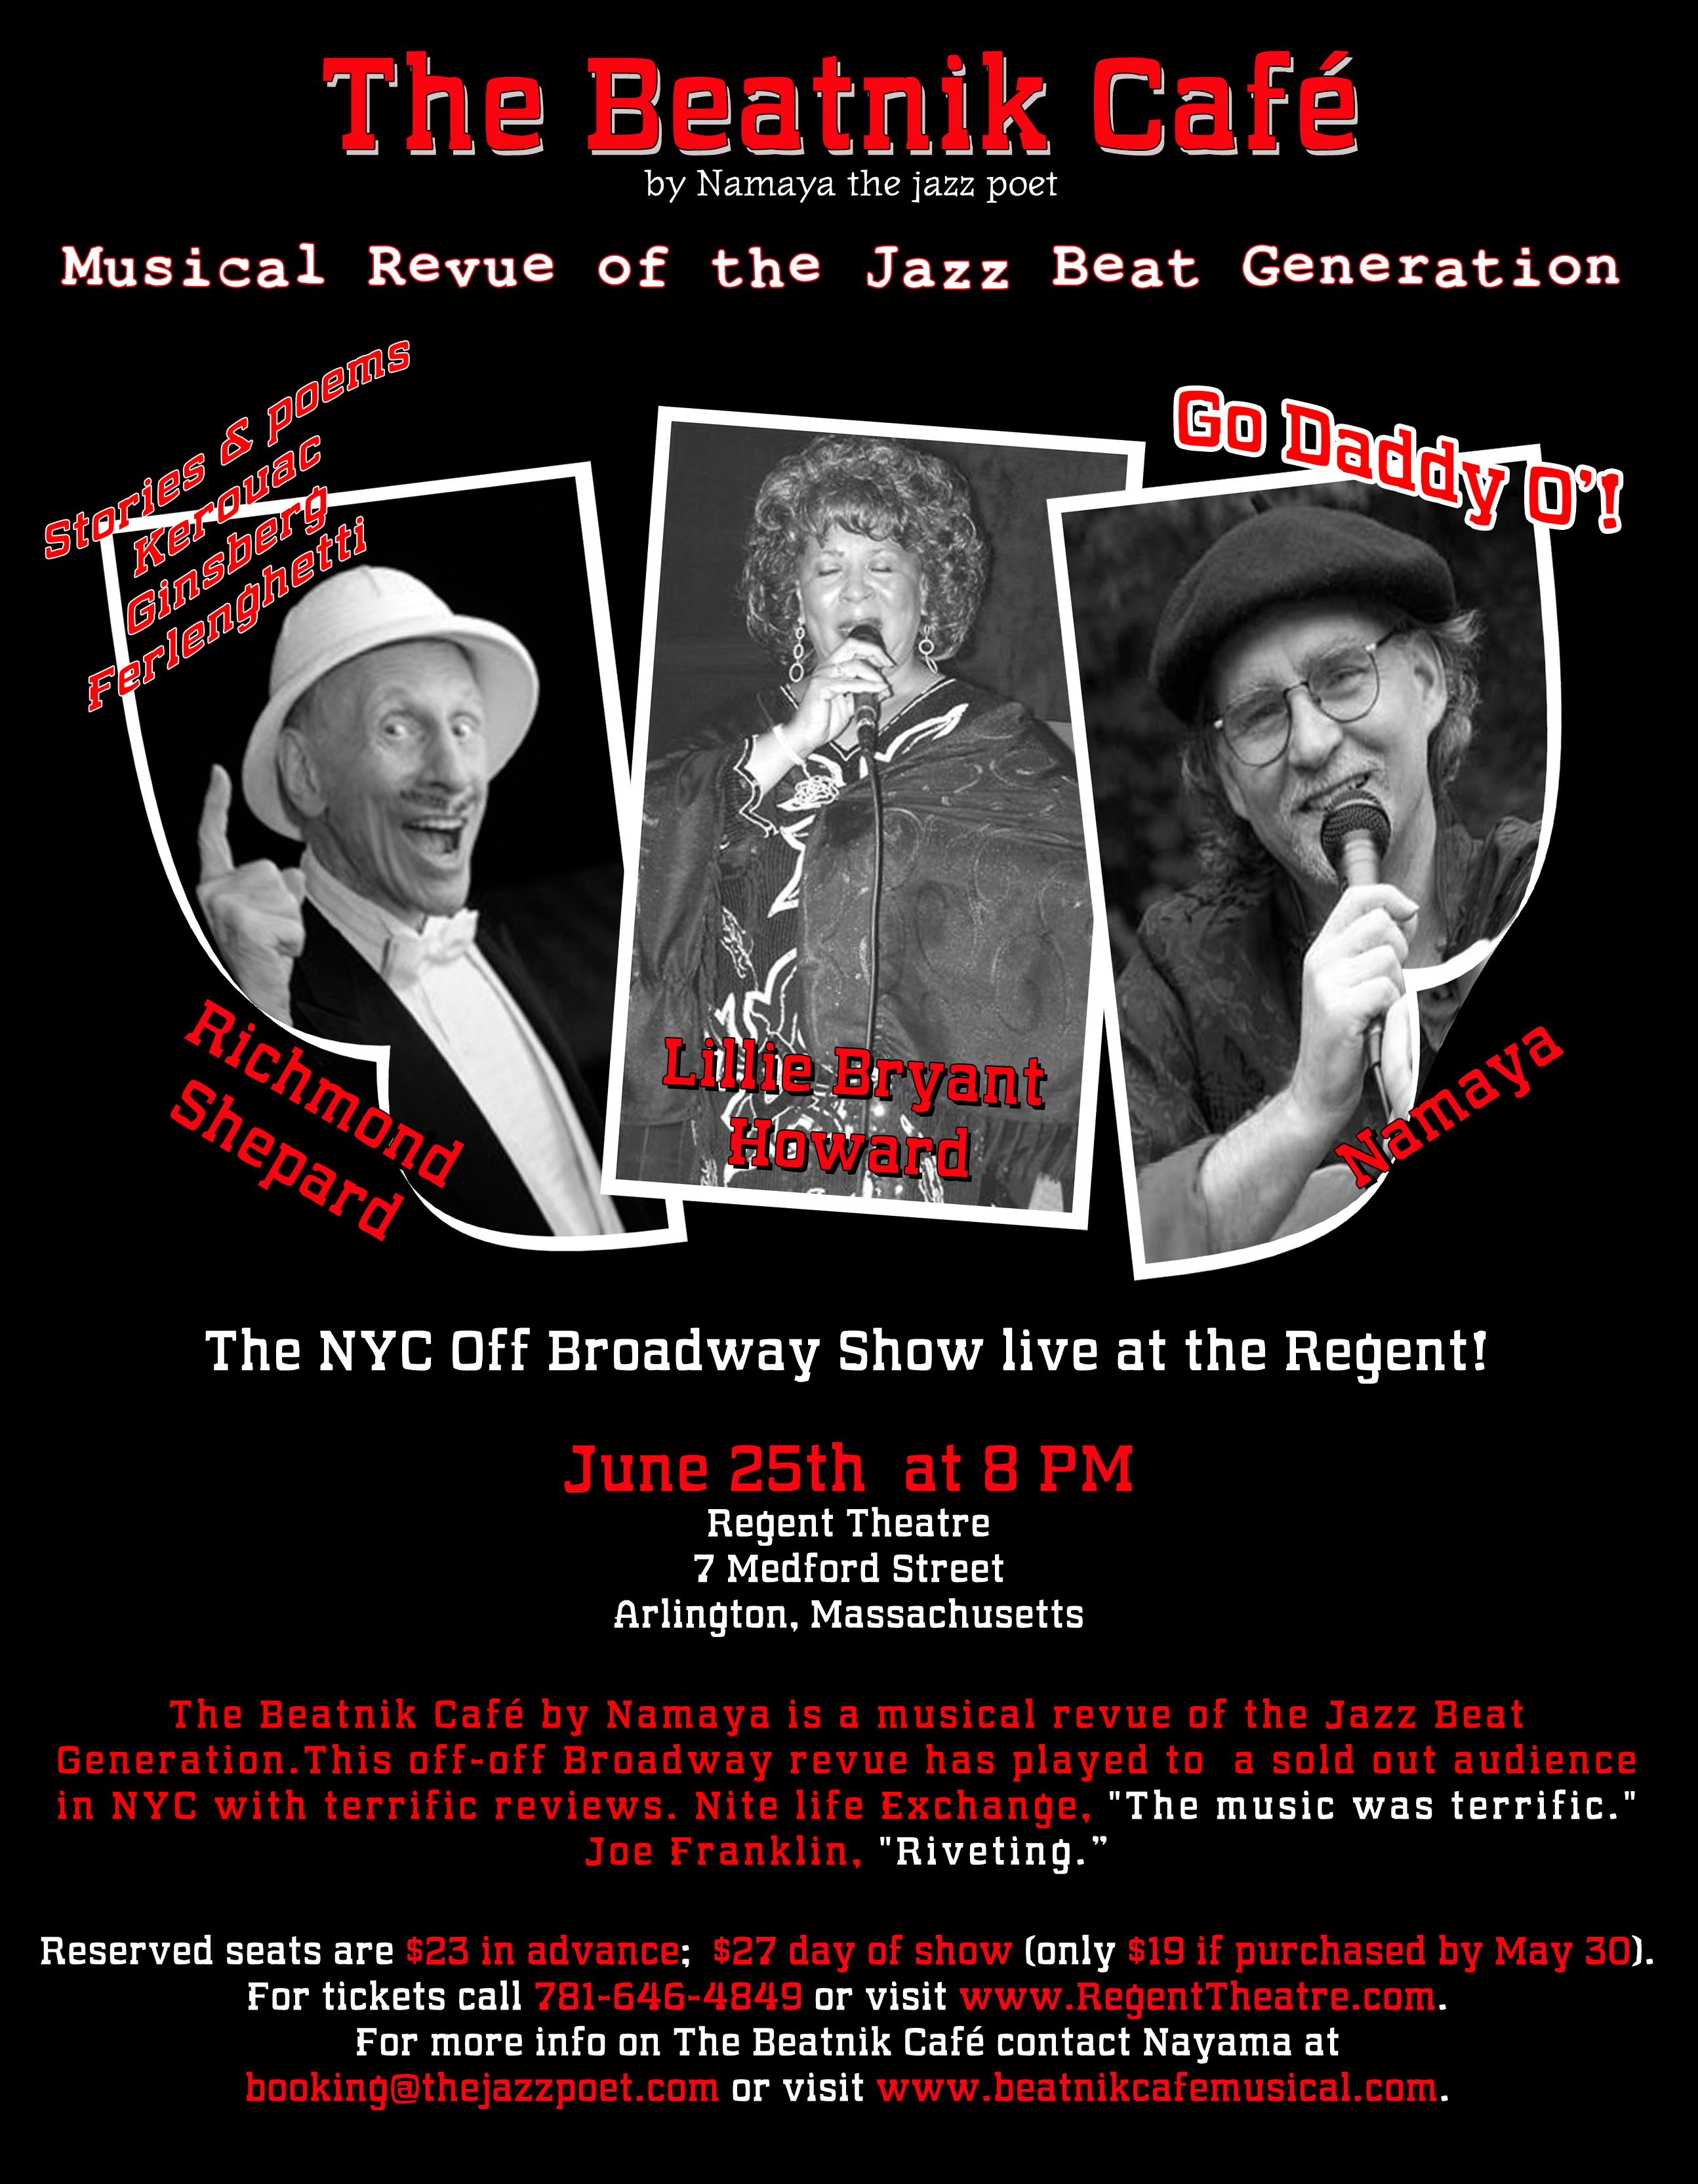 The Beatnik Cafe: Musical Revue of the Jazz Beat Generation